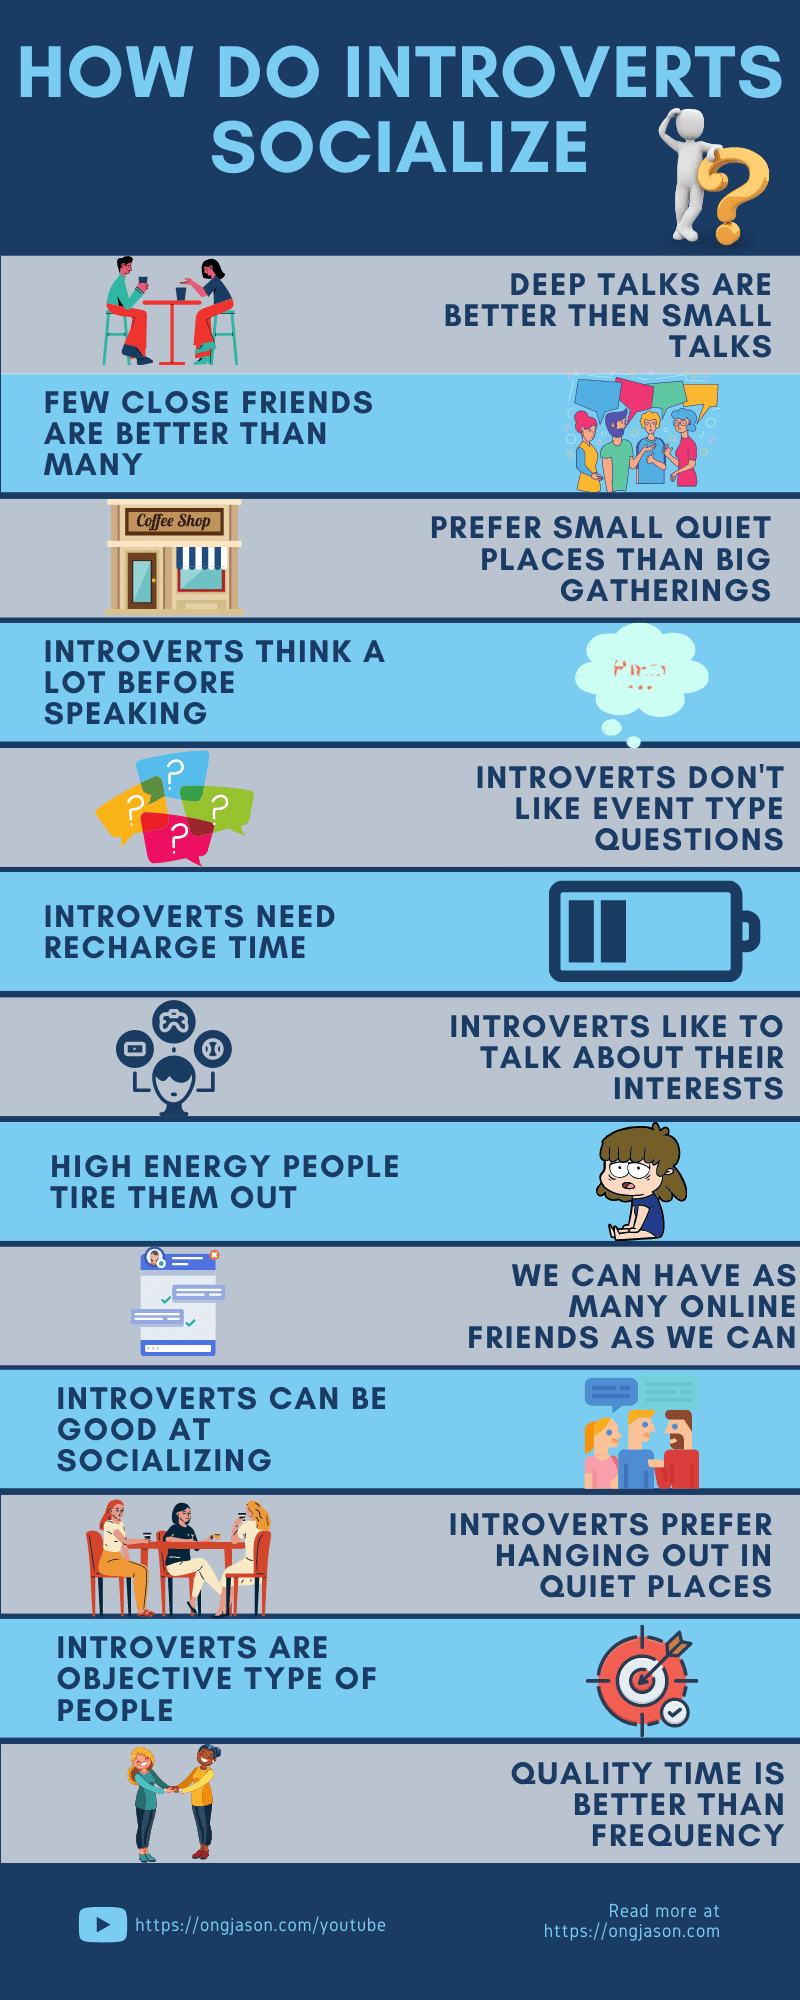 How do Introverts Socialize Infographic